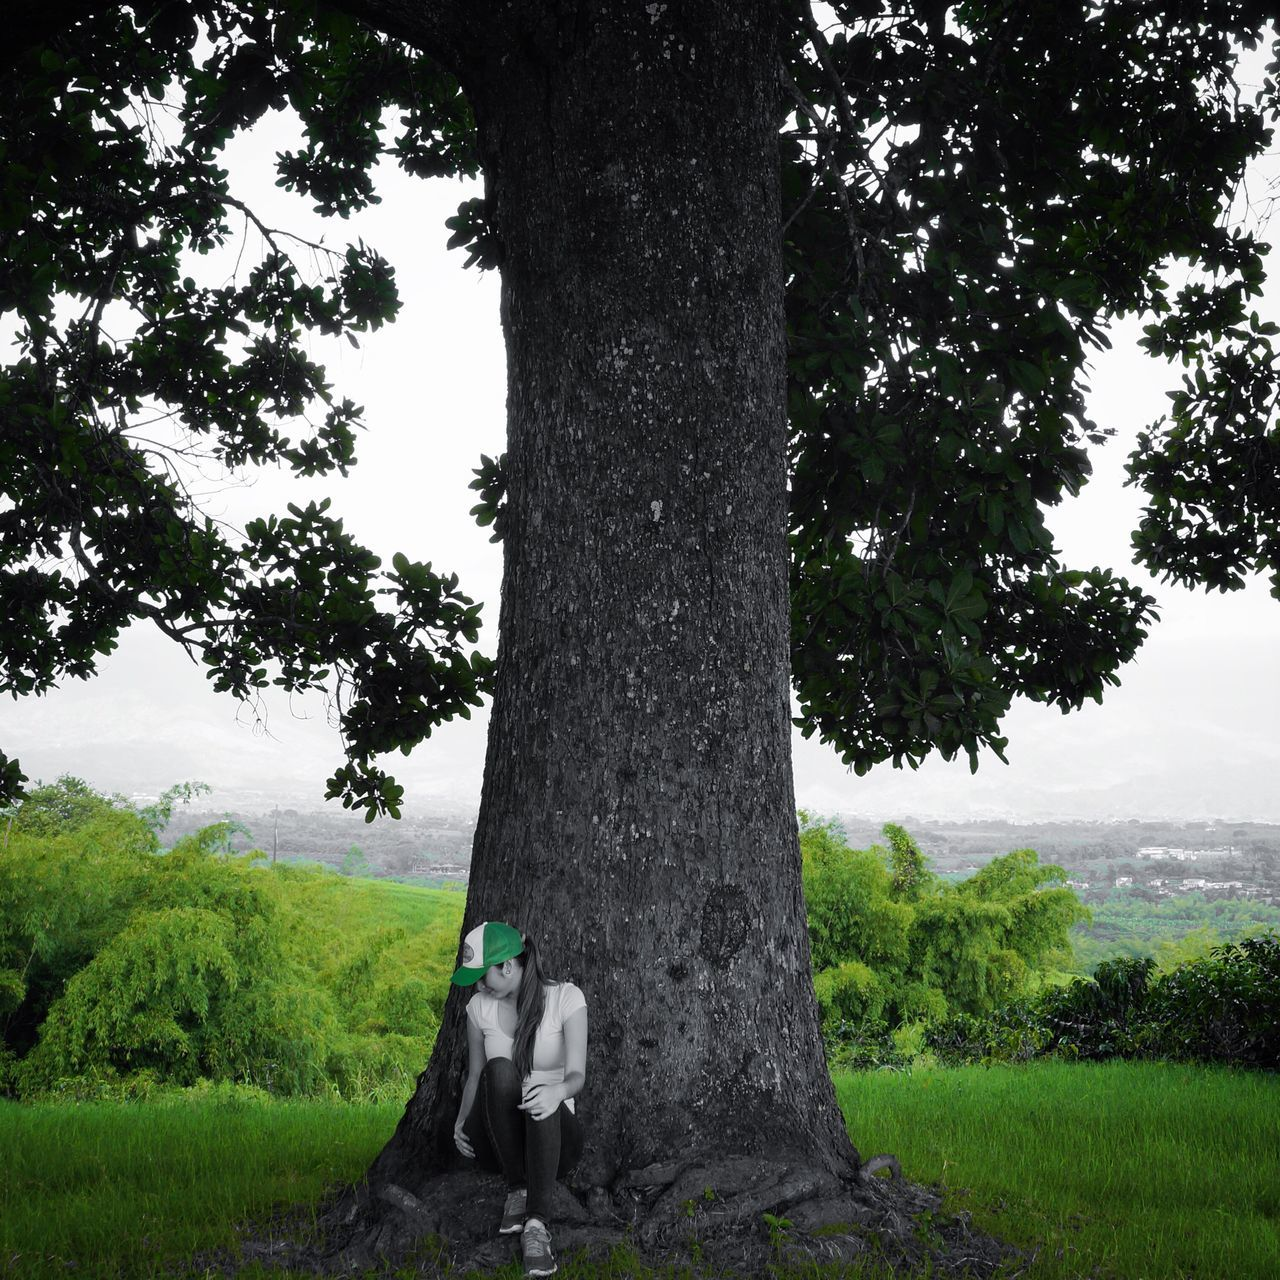 tree, tree trunk, growth, day, outdoors, nature, men, one person, full length, real people, green color, standing, grass, sitting, one man only, landscape, sky, branch, beauty in nature, only men, mammal, people